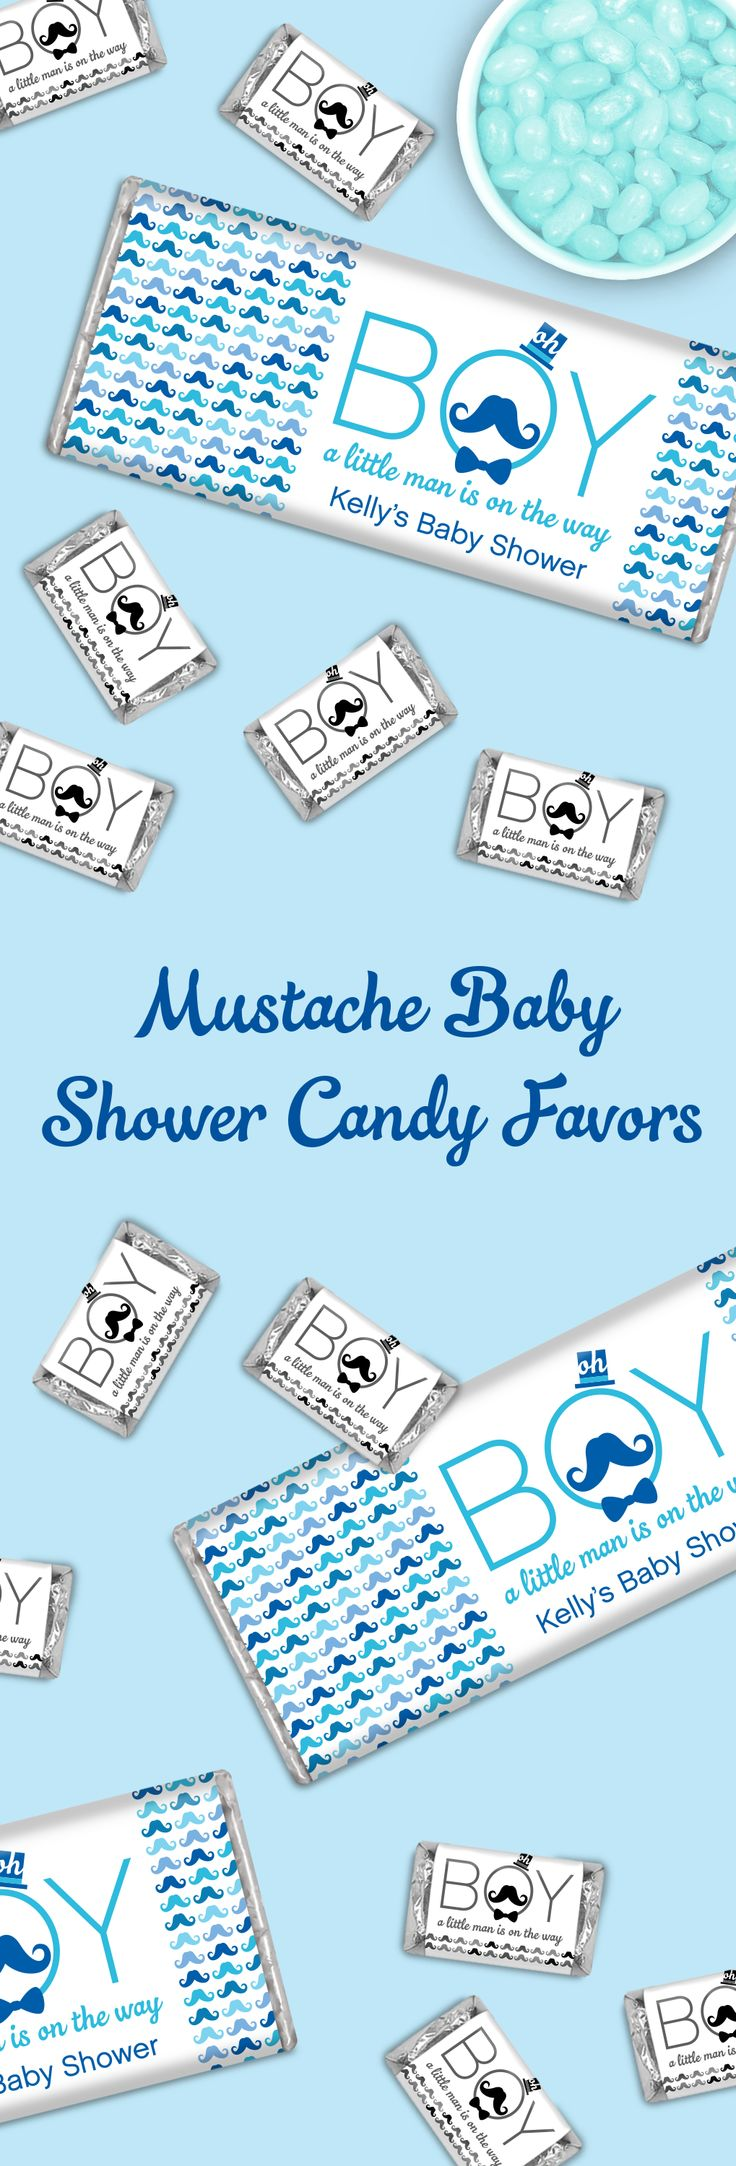 "Mustache Baby Shower Candy Buffet: Personalized candy bars for an ""Oh Boy"" or Little Man Shower - Don't forget blue Jelly Belly Jelly Beans too!"